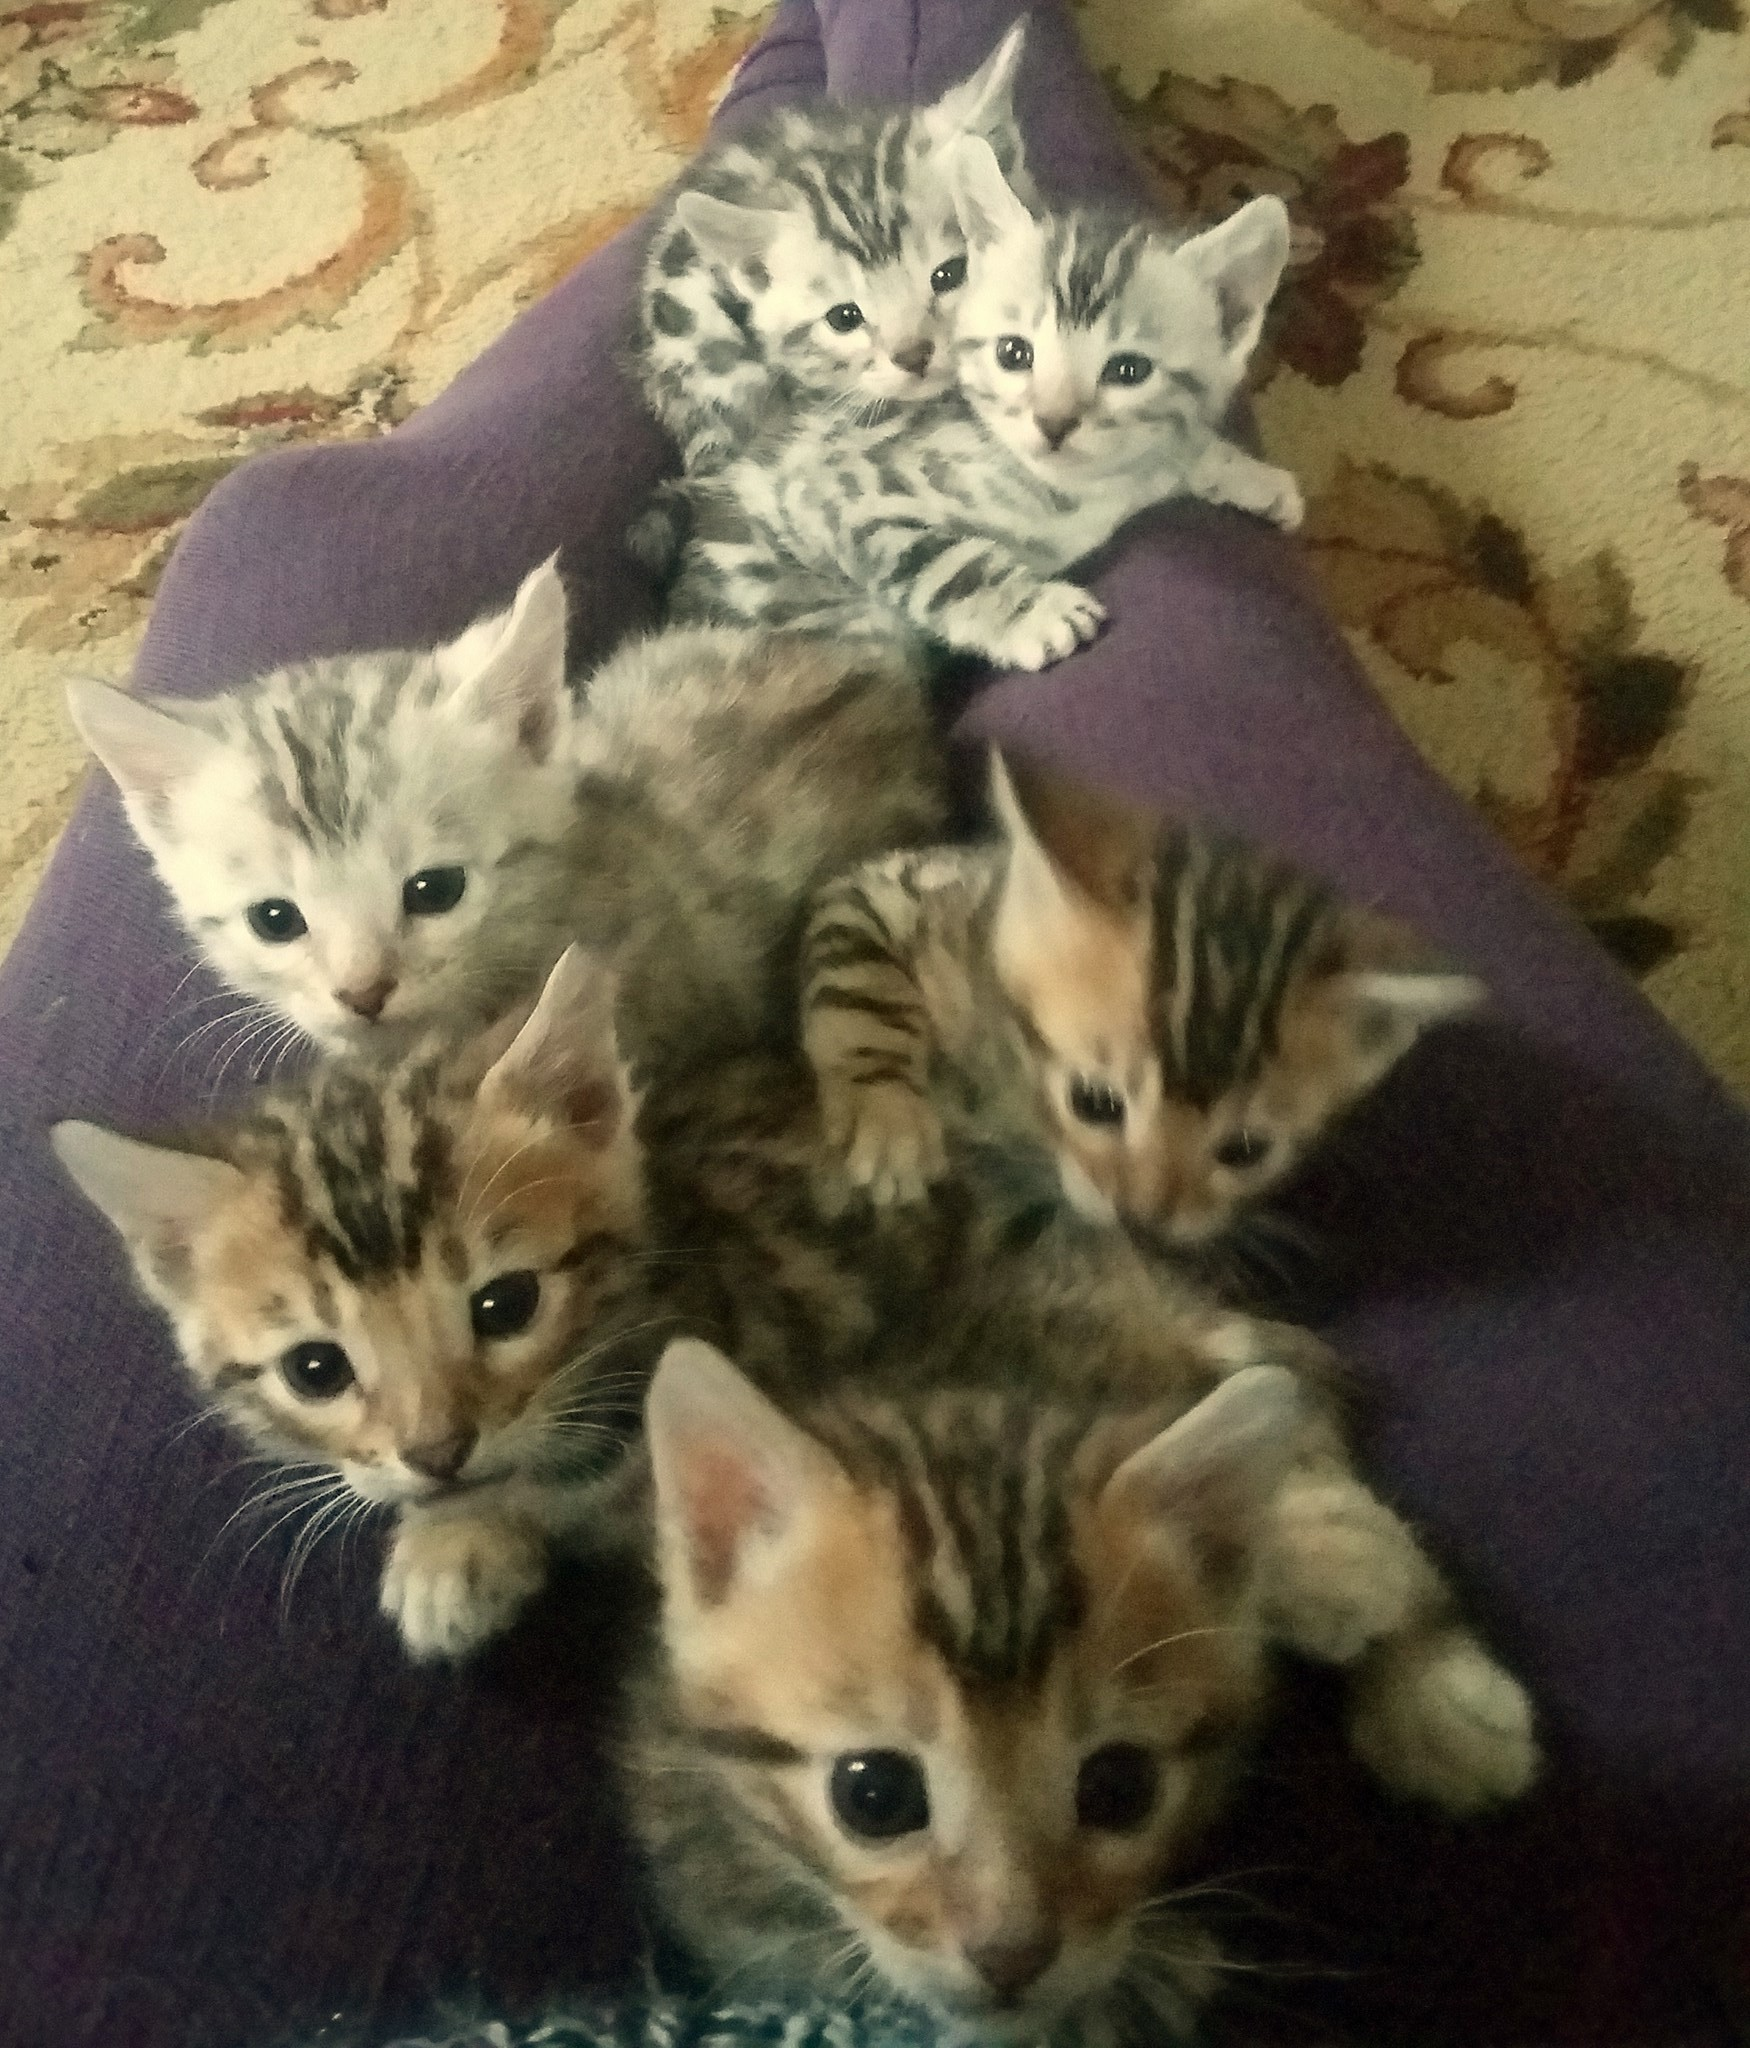 Lazarus - Blackstar - David Bowie Tribute Litter - Bengal Kittens ...